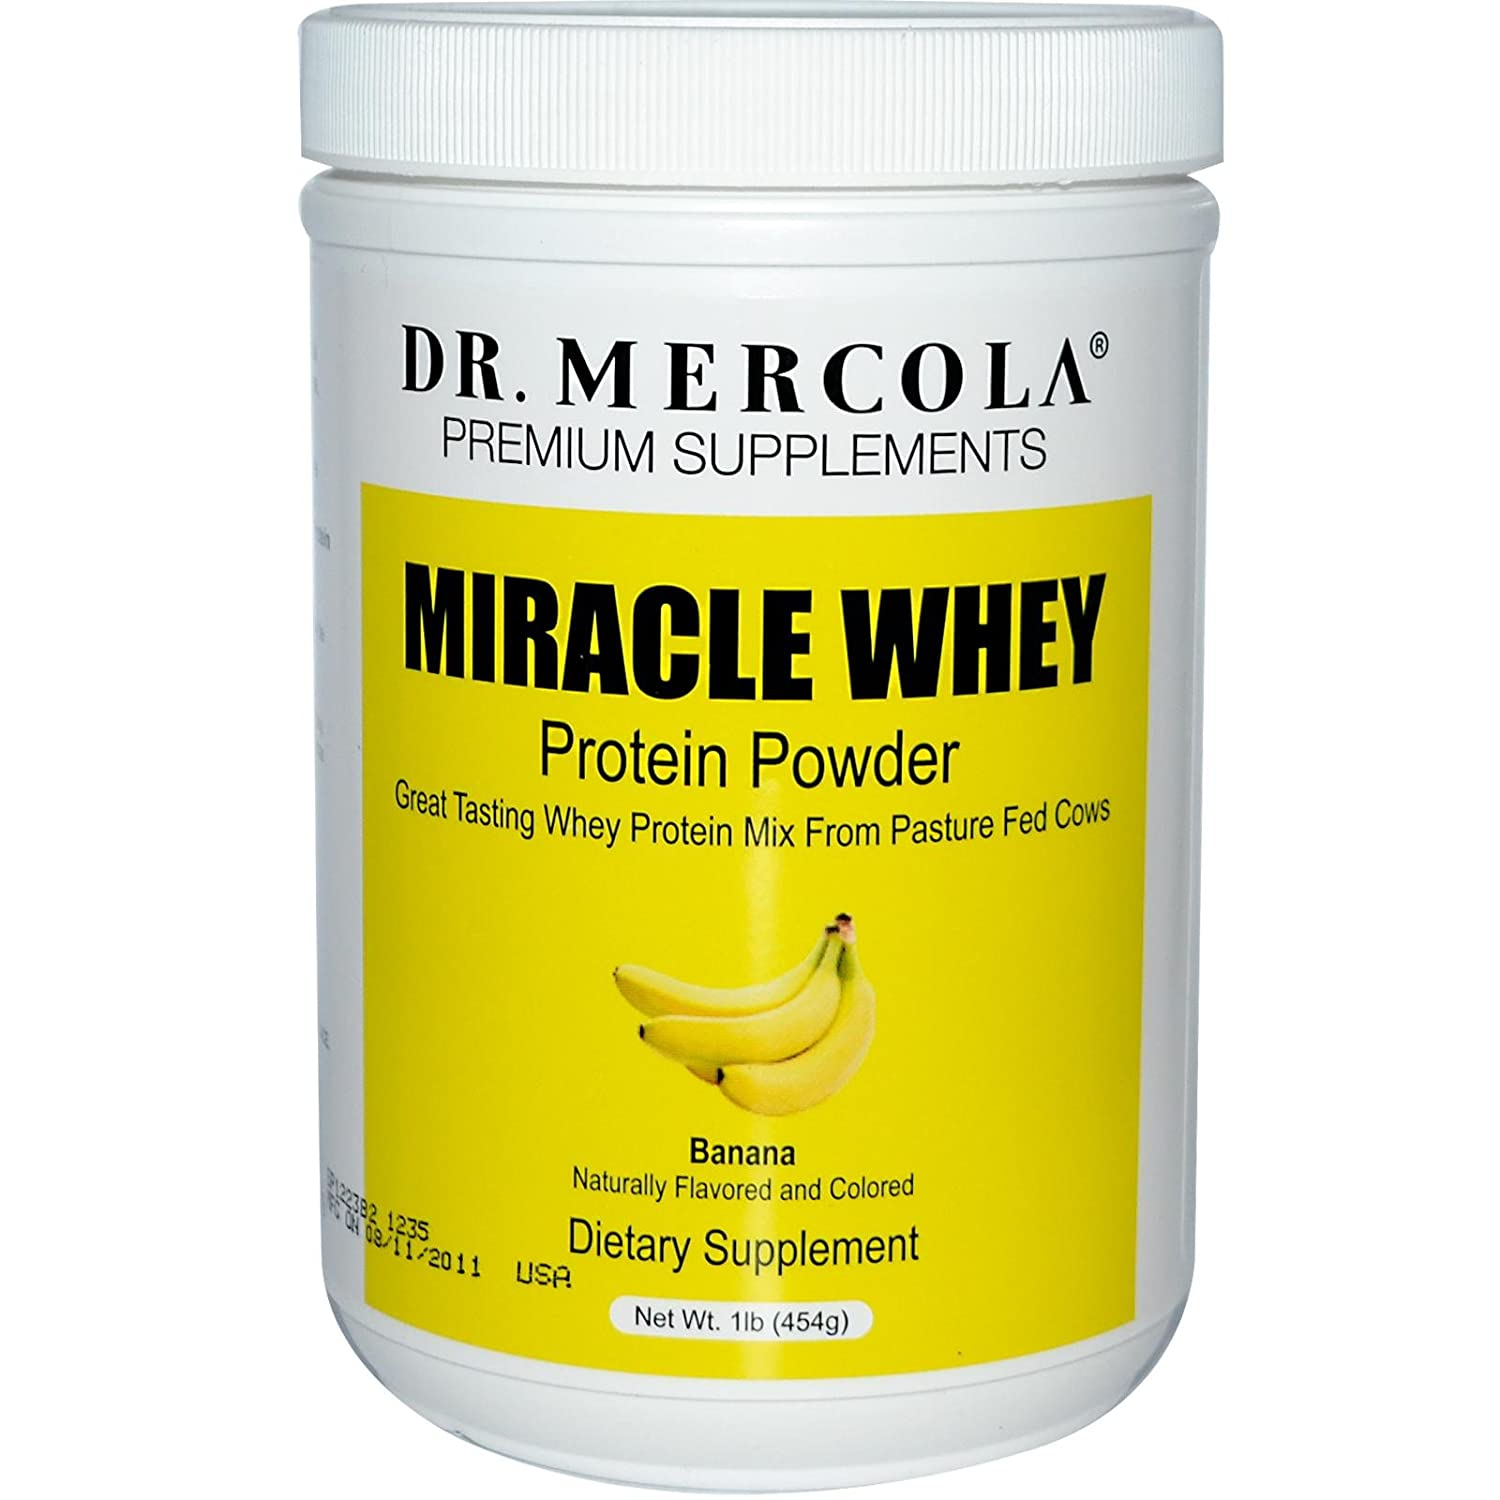 Dr. Mercola Miracle Whey Concentrate Protein Powder – Banana Flavor – Lean Muscle Growth, Immune Support – Colostrum, Sunflower Lecithin, MCT, Beta Glucan, Amino Acids Cysteine, Glycine, Glutamate